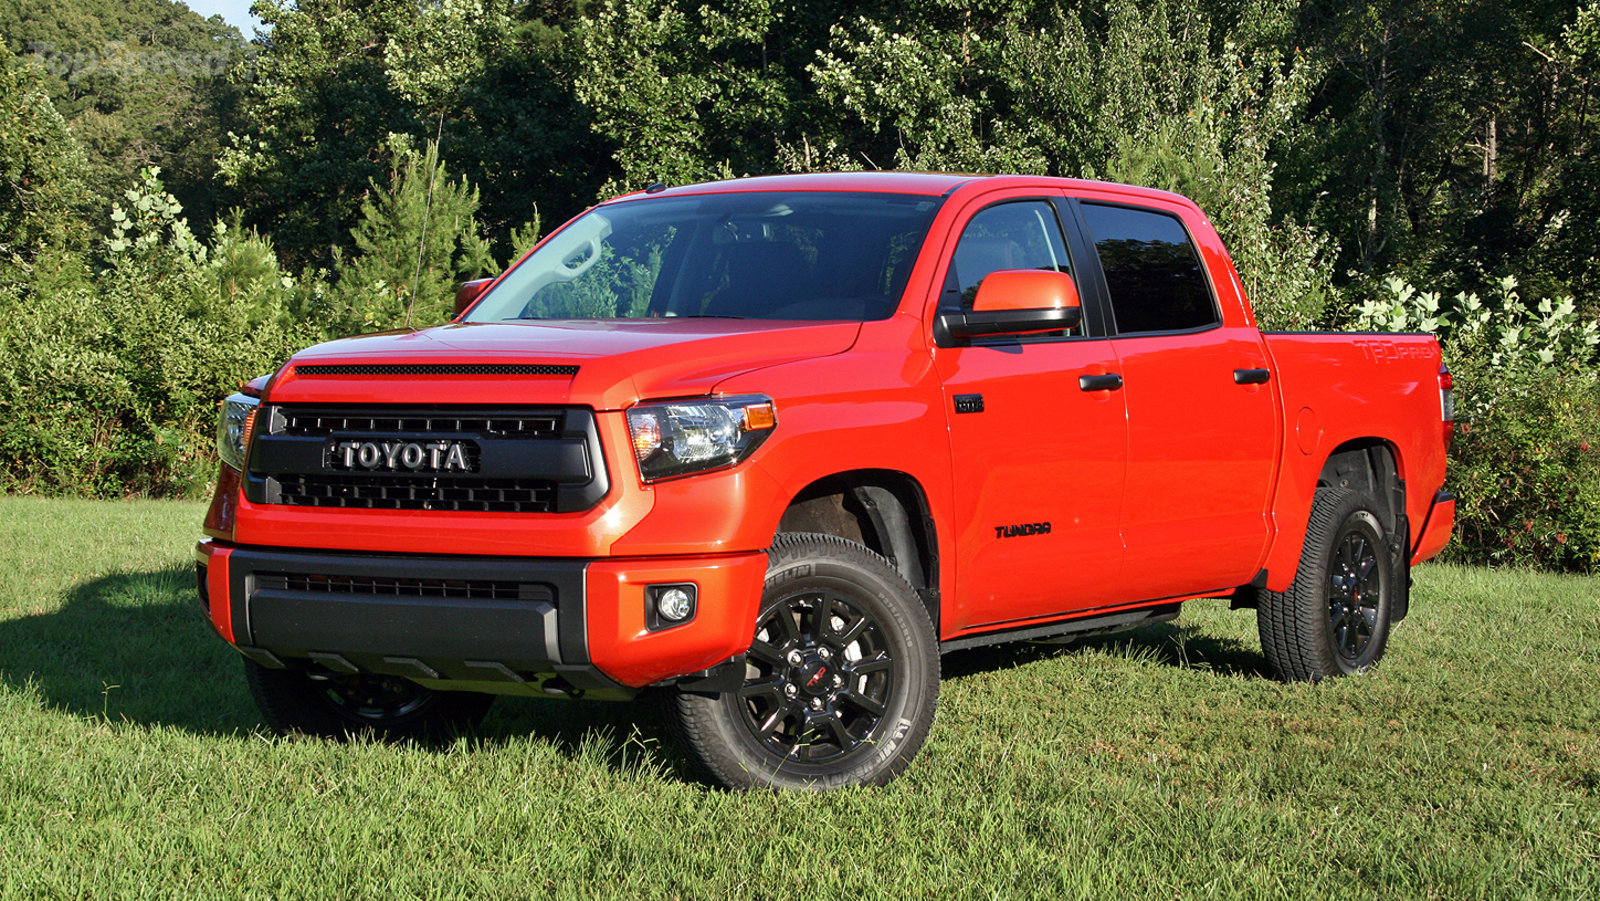 Types Of Pickup Trucks >> 2015 Toyota Tundra TRD Pro - Driven Review - Gallery - Top Speed